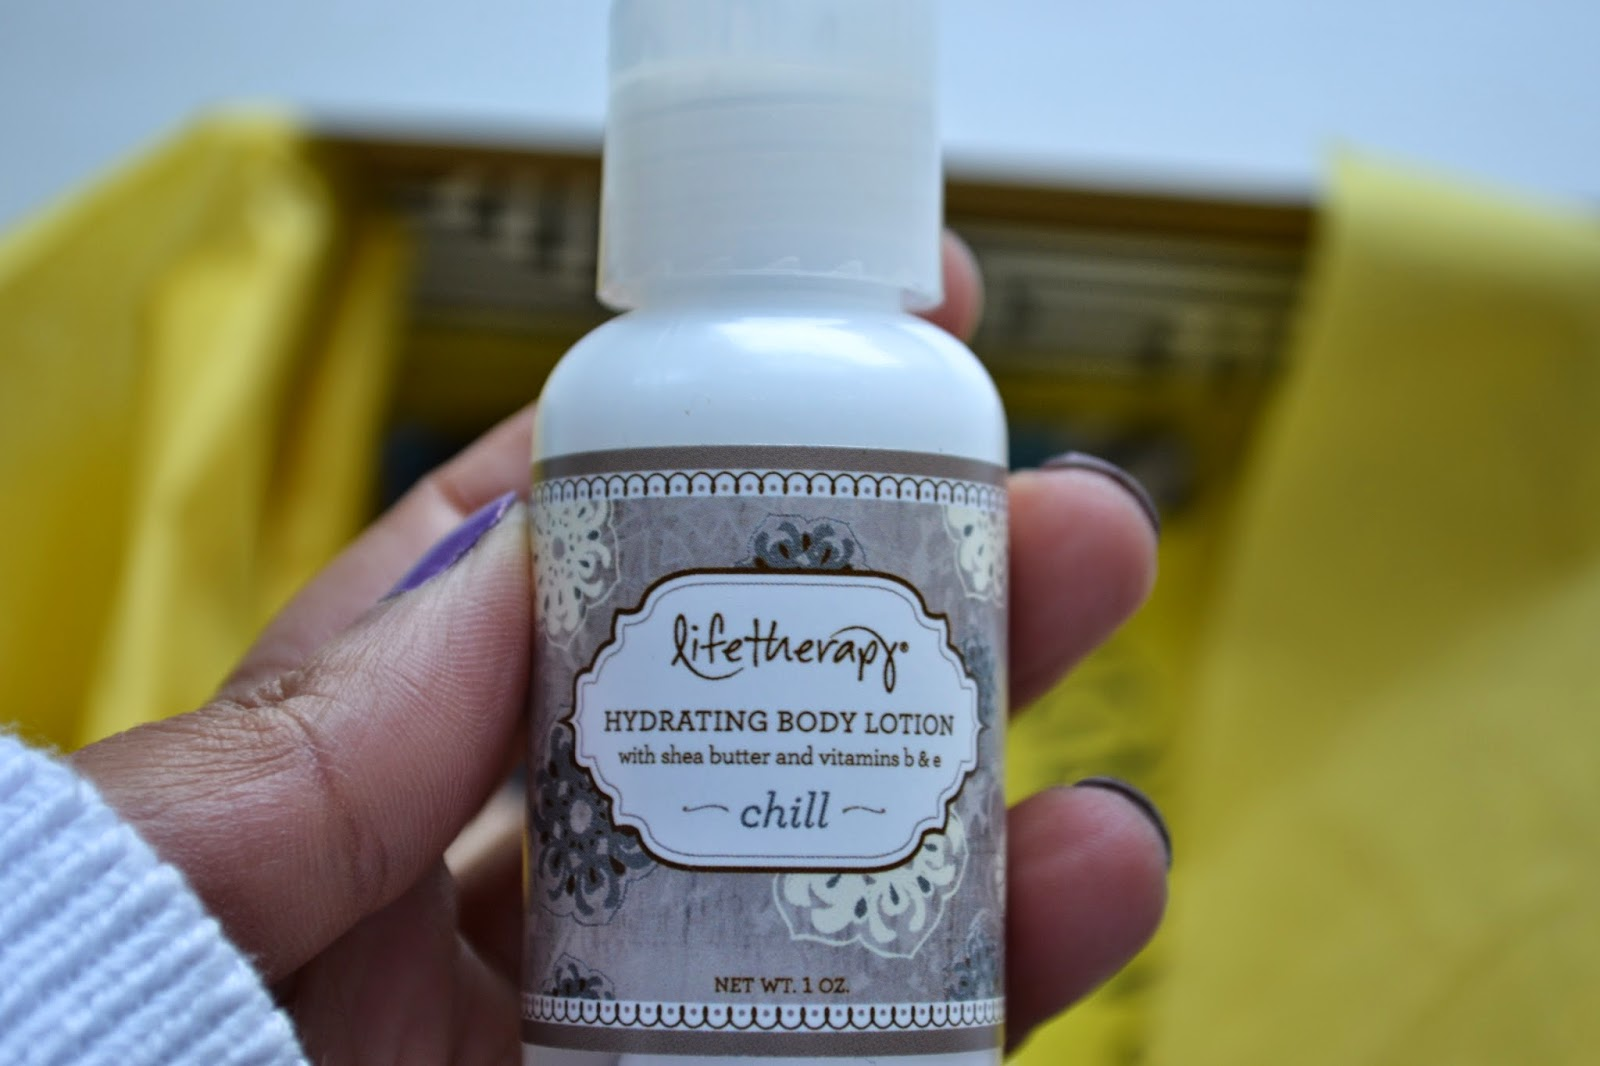 Lifetherapy Chill Hydrating Body Lotion